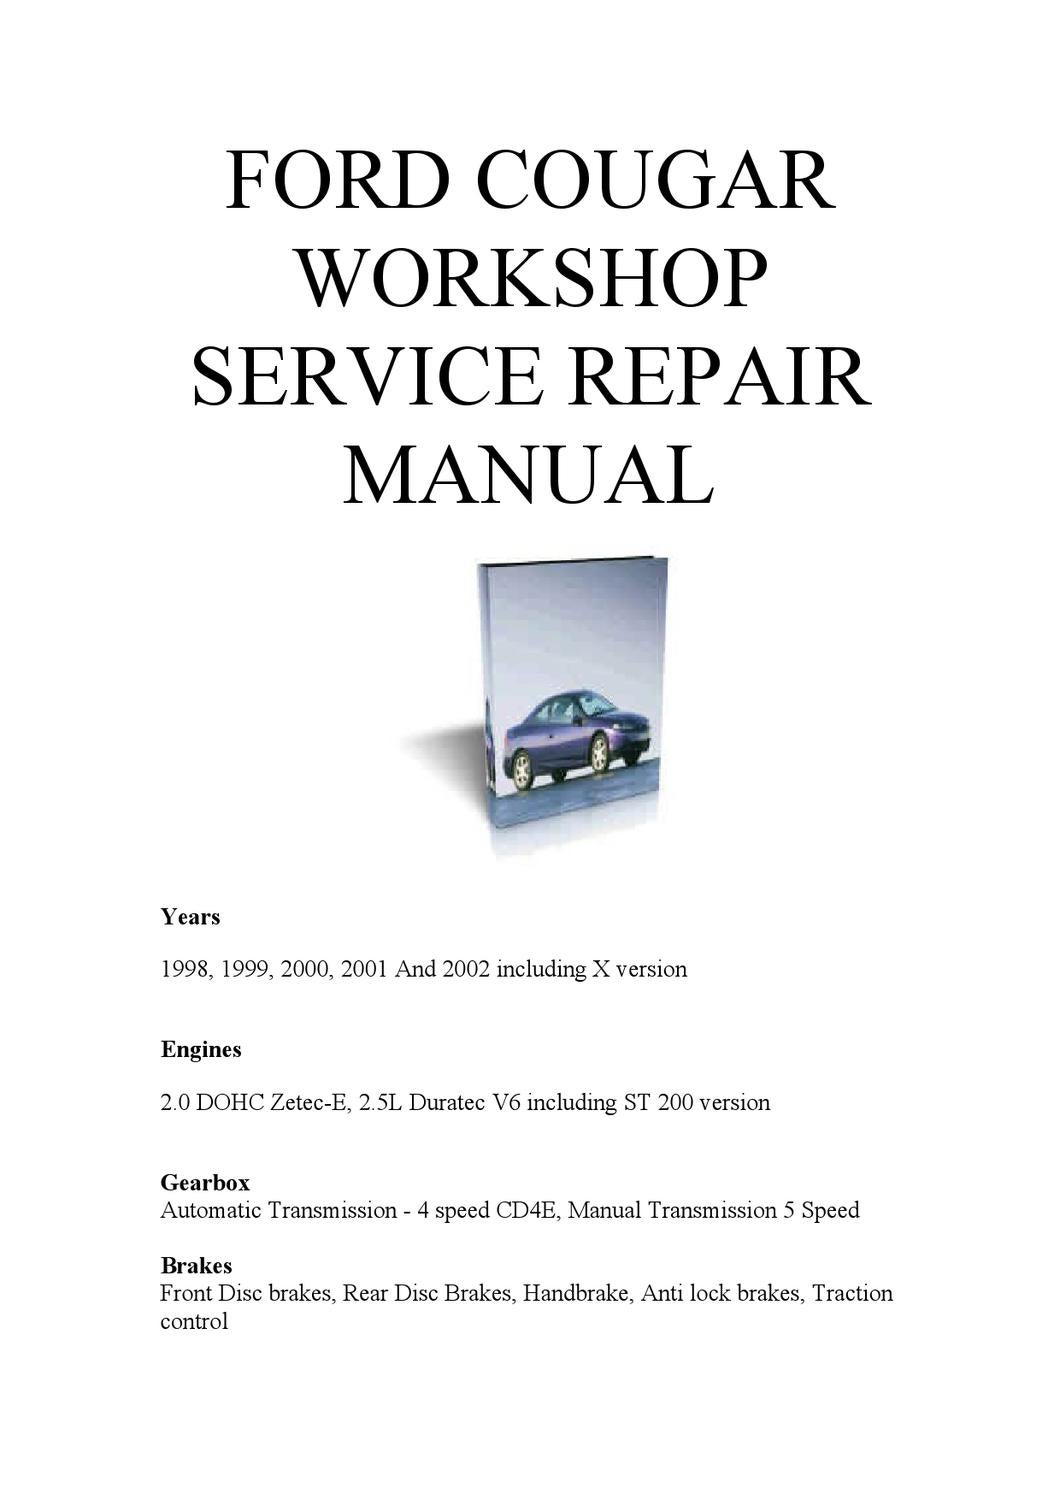 •ford cougar repair manual pdf by Mark James - issuu